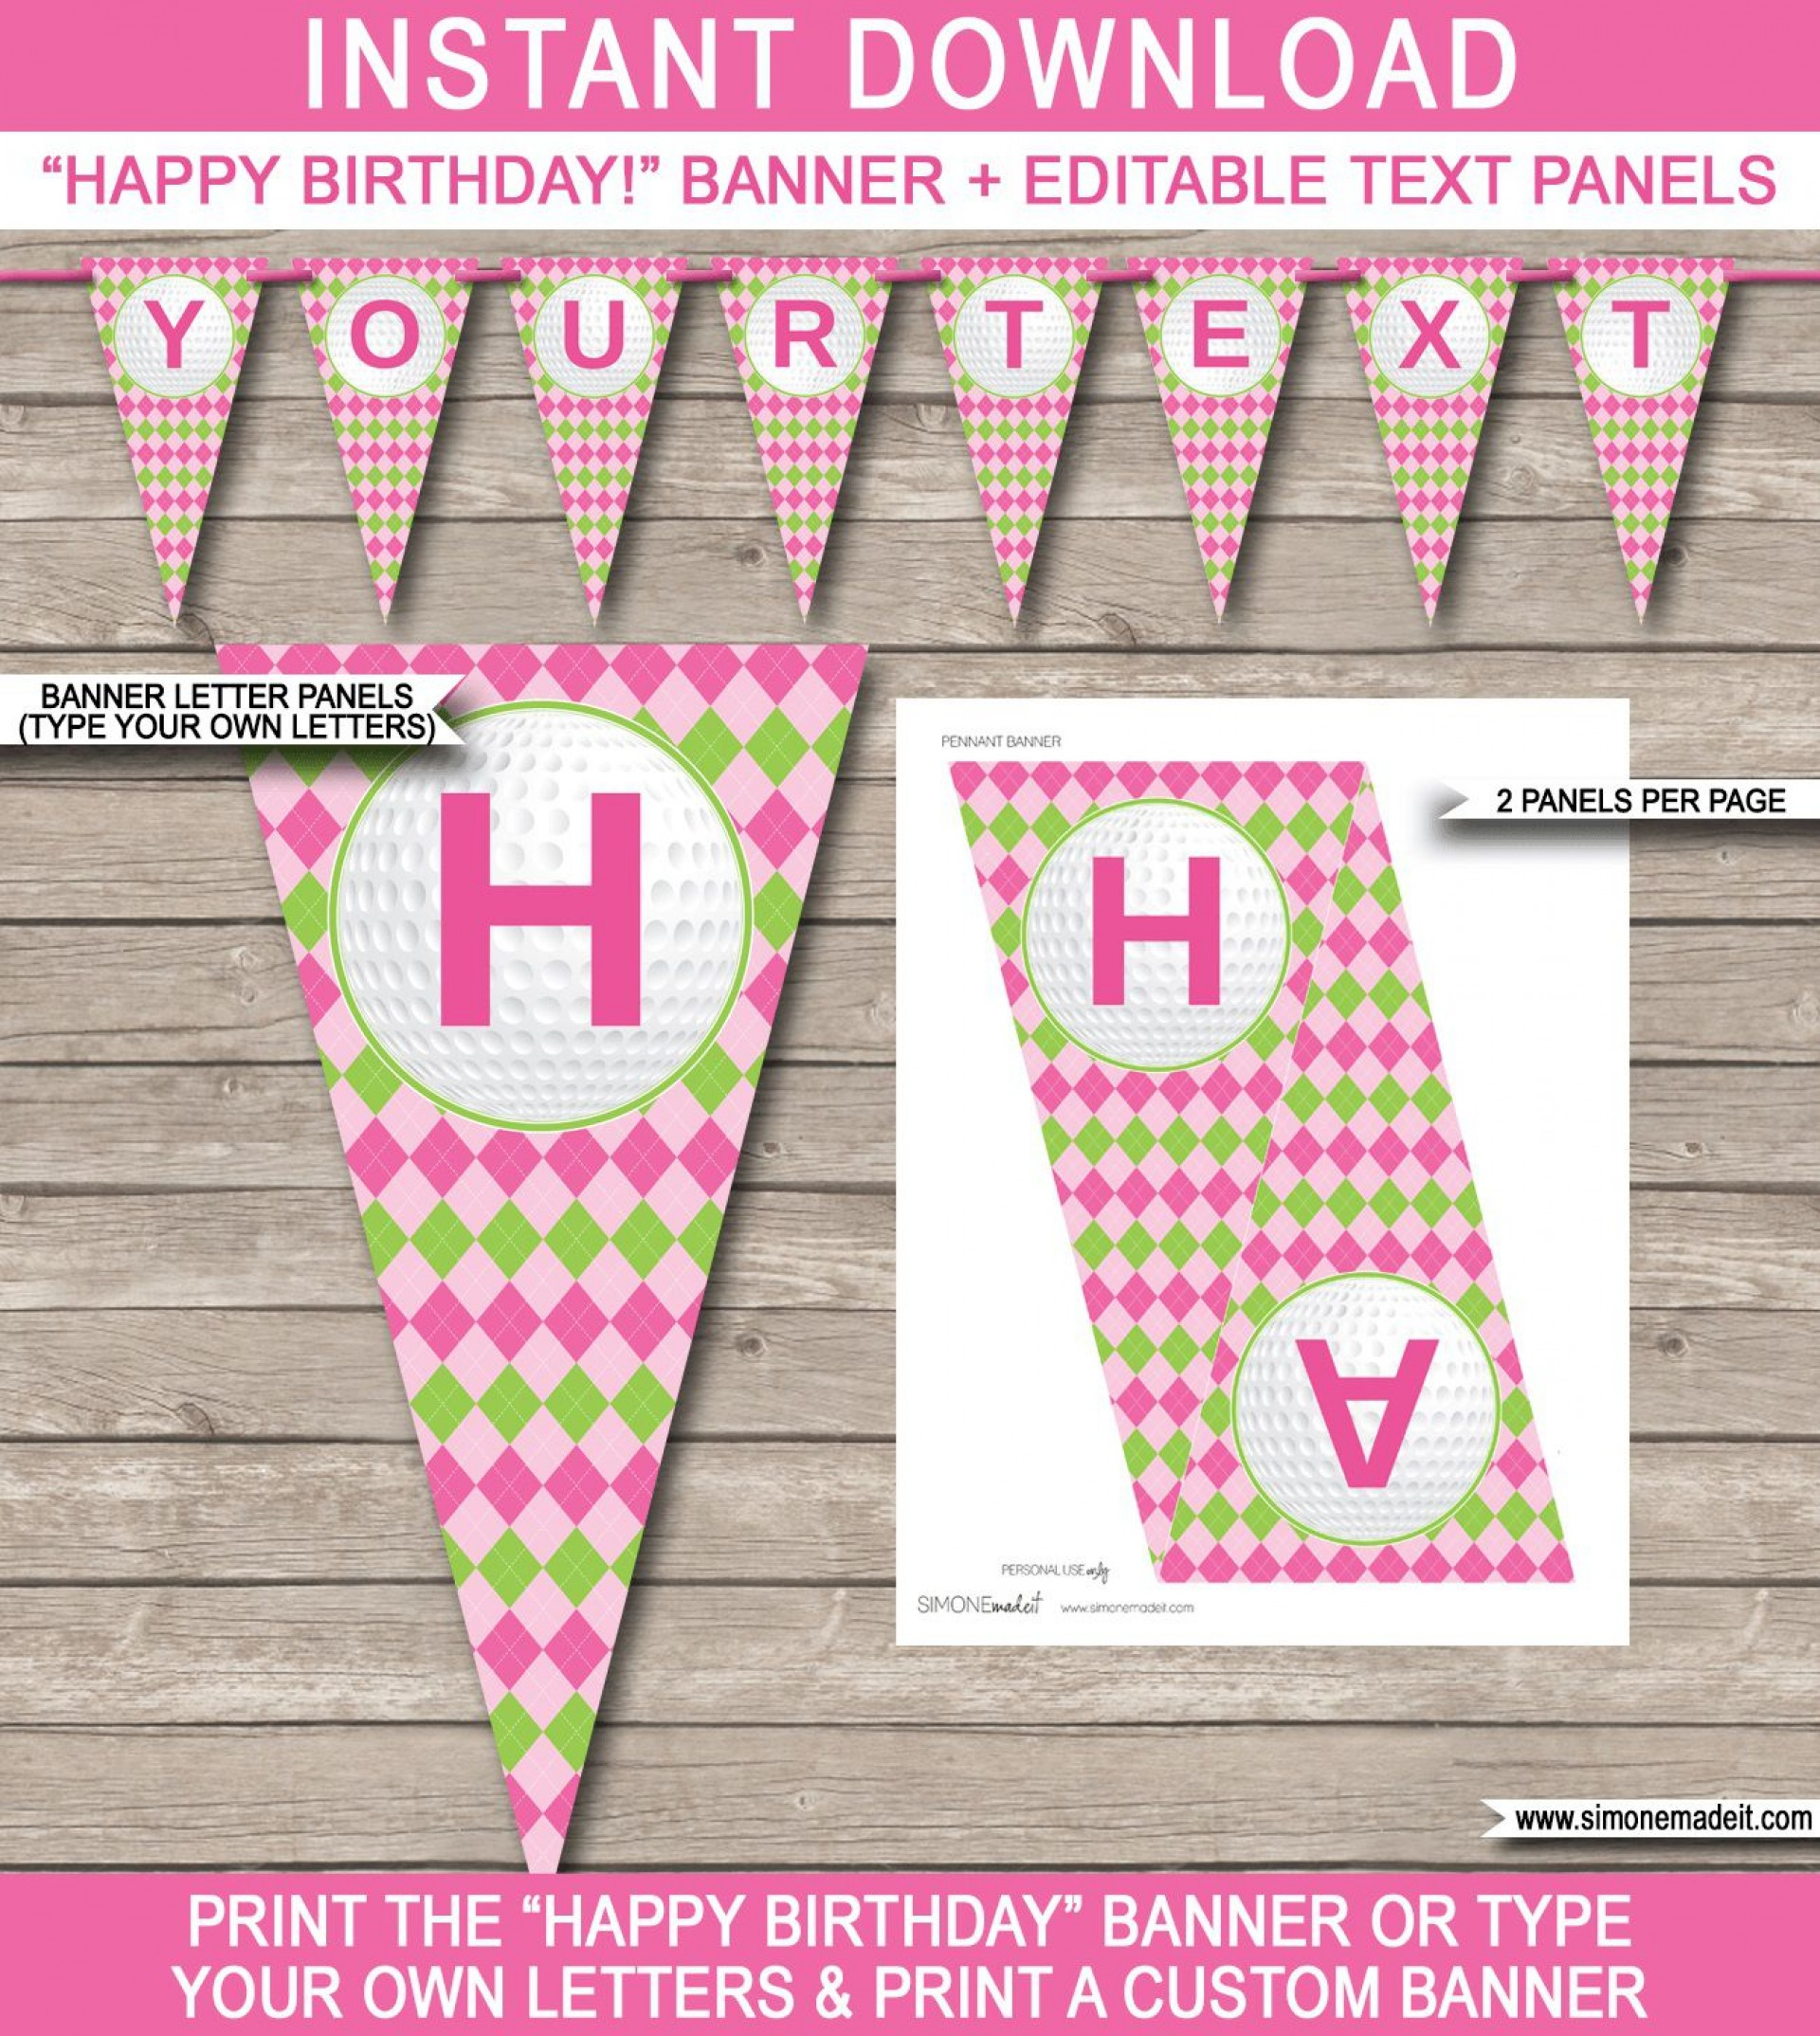 008 Archaicawful Happy Birthday Banner Template Sample  Publisher Editable Pdf1920